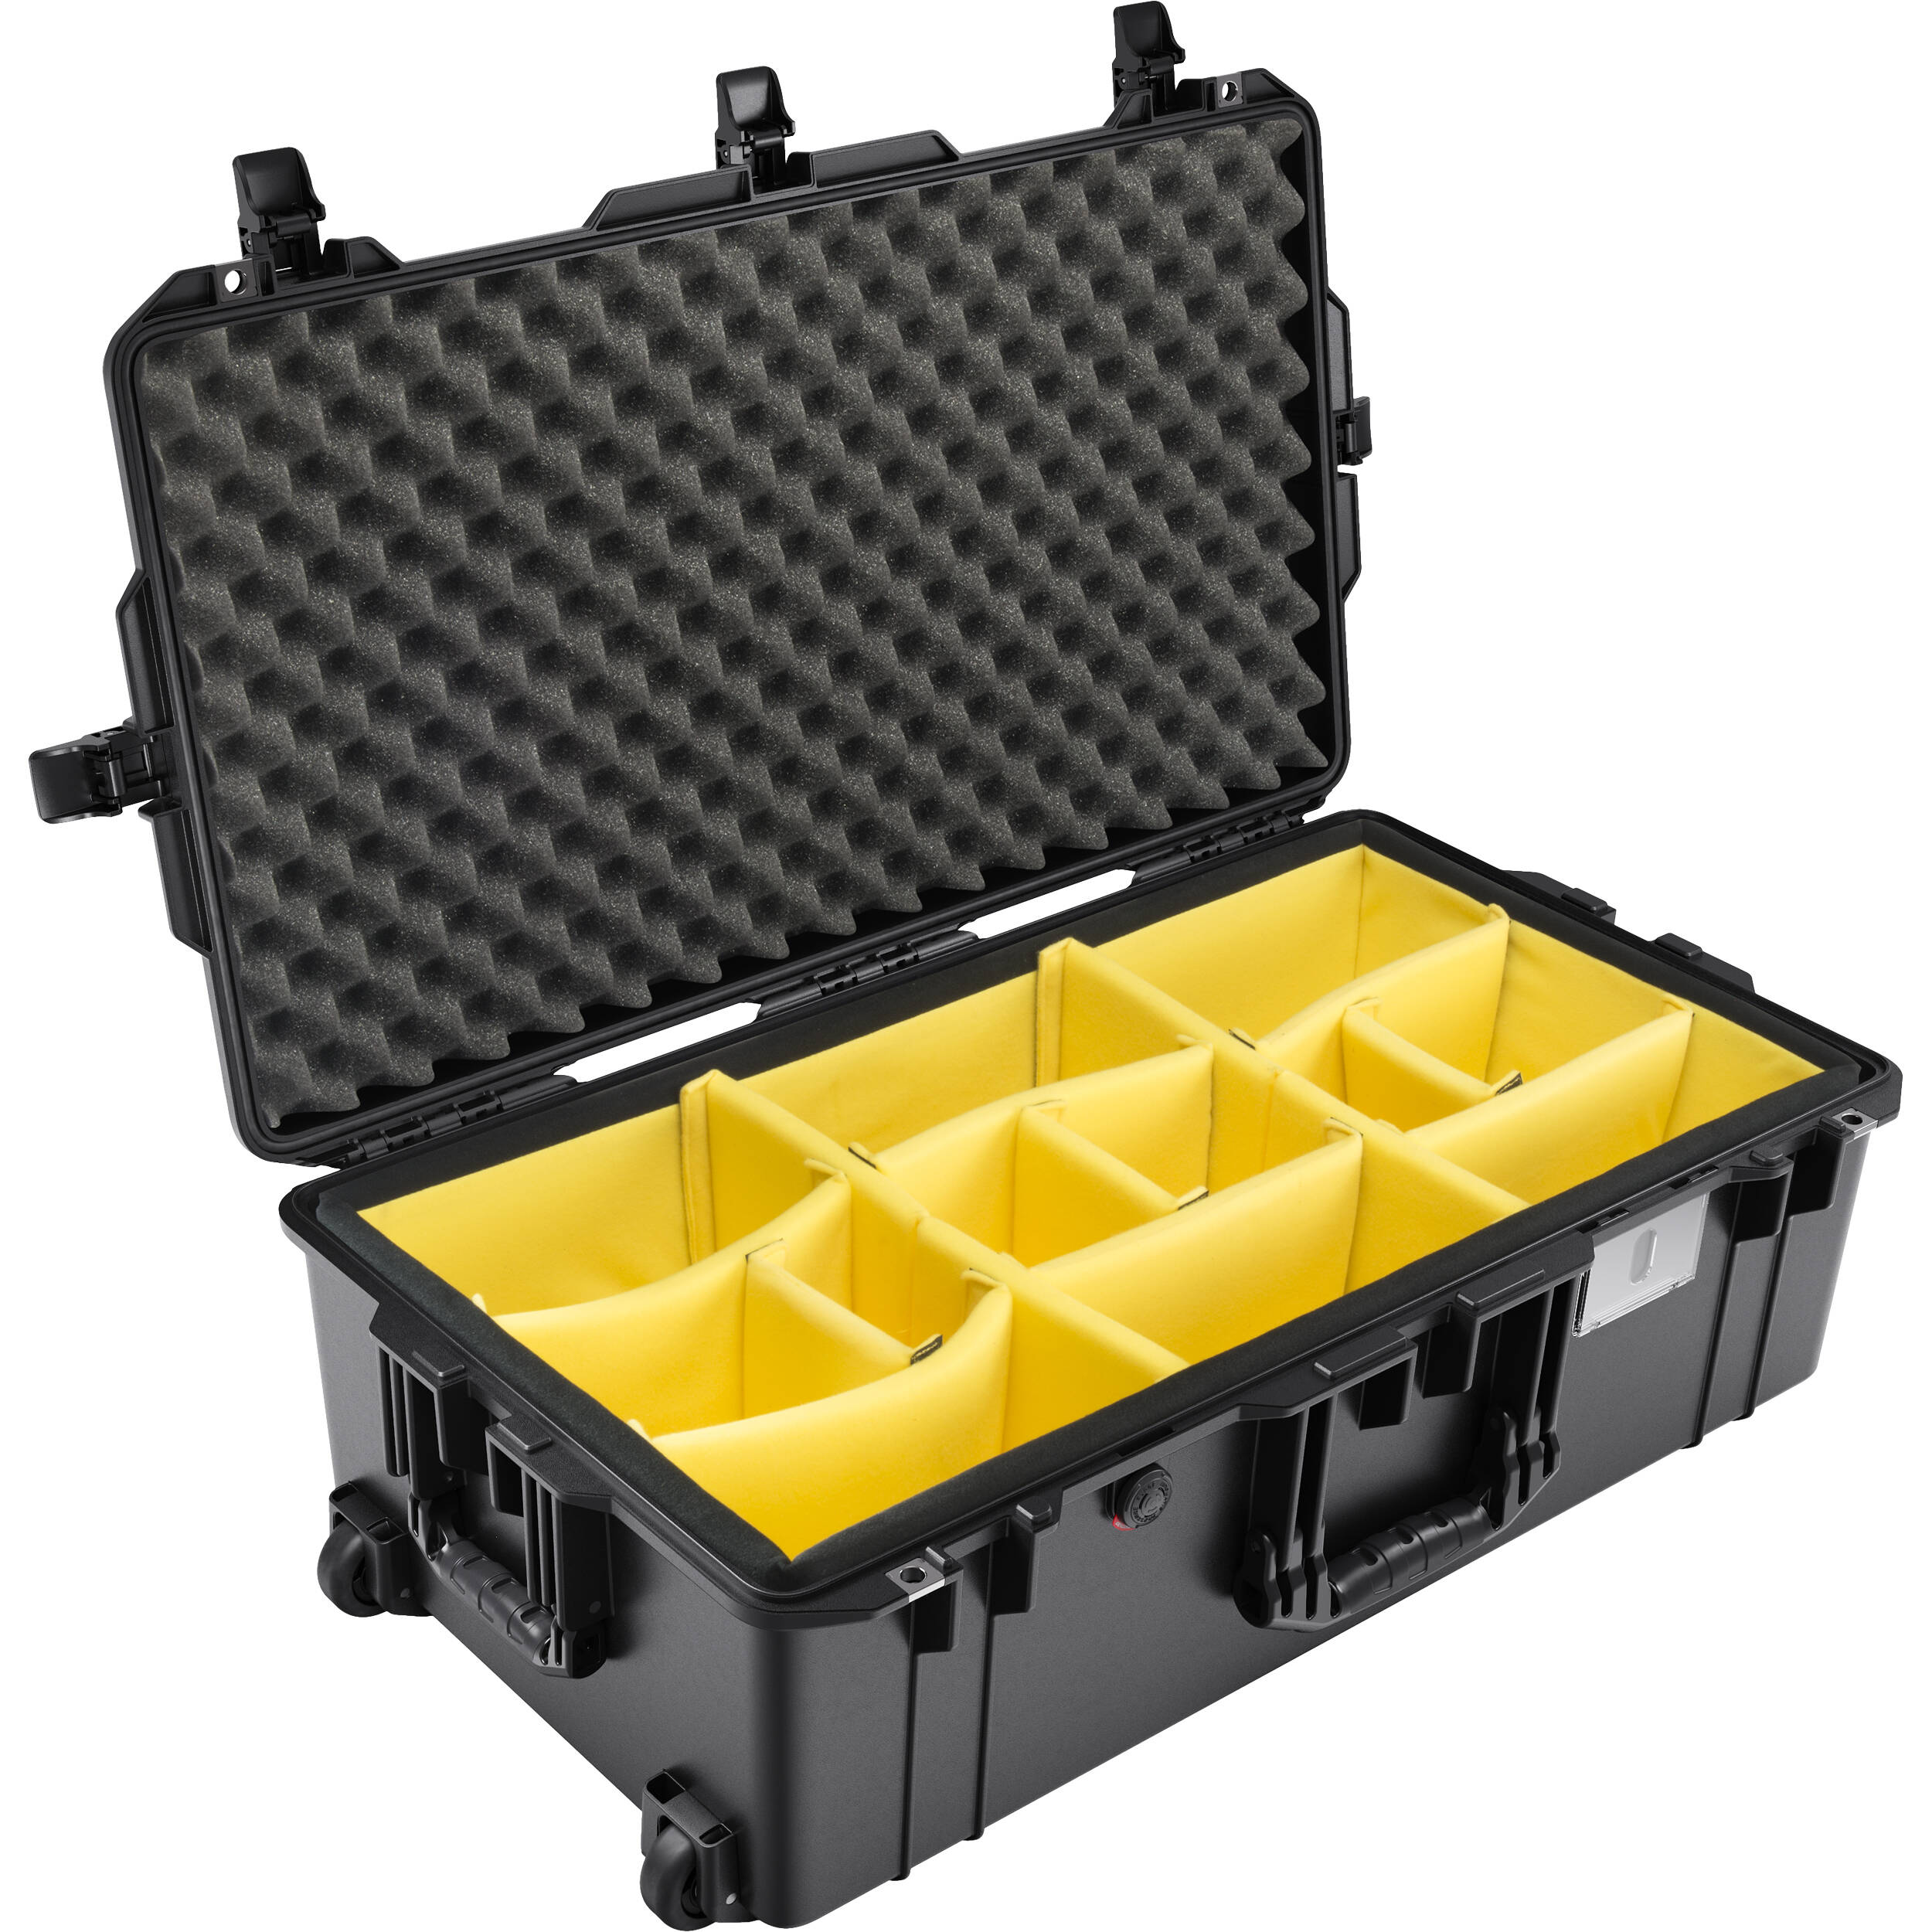 Case Comes Empty and with Wheels. Pelican Orange /& Black 1615 case